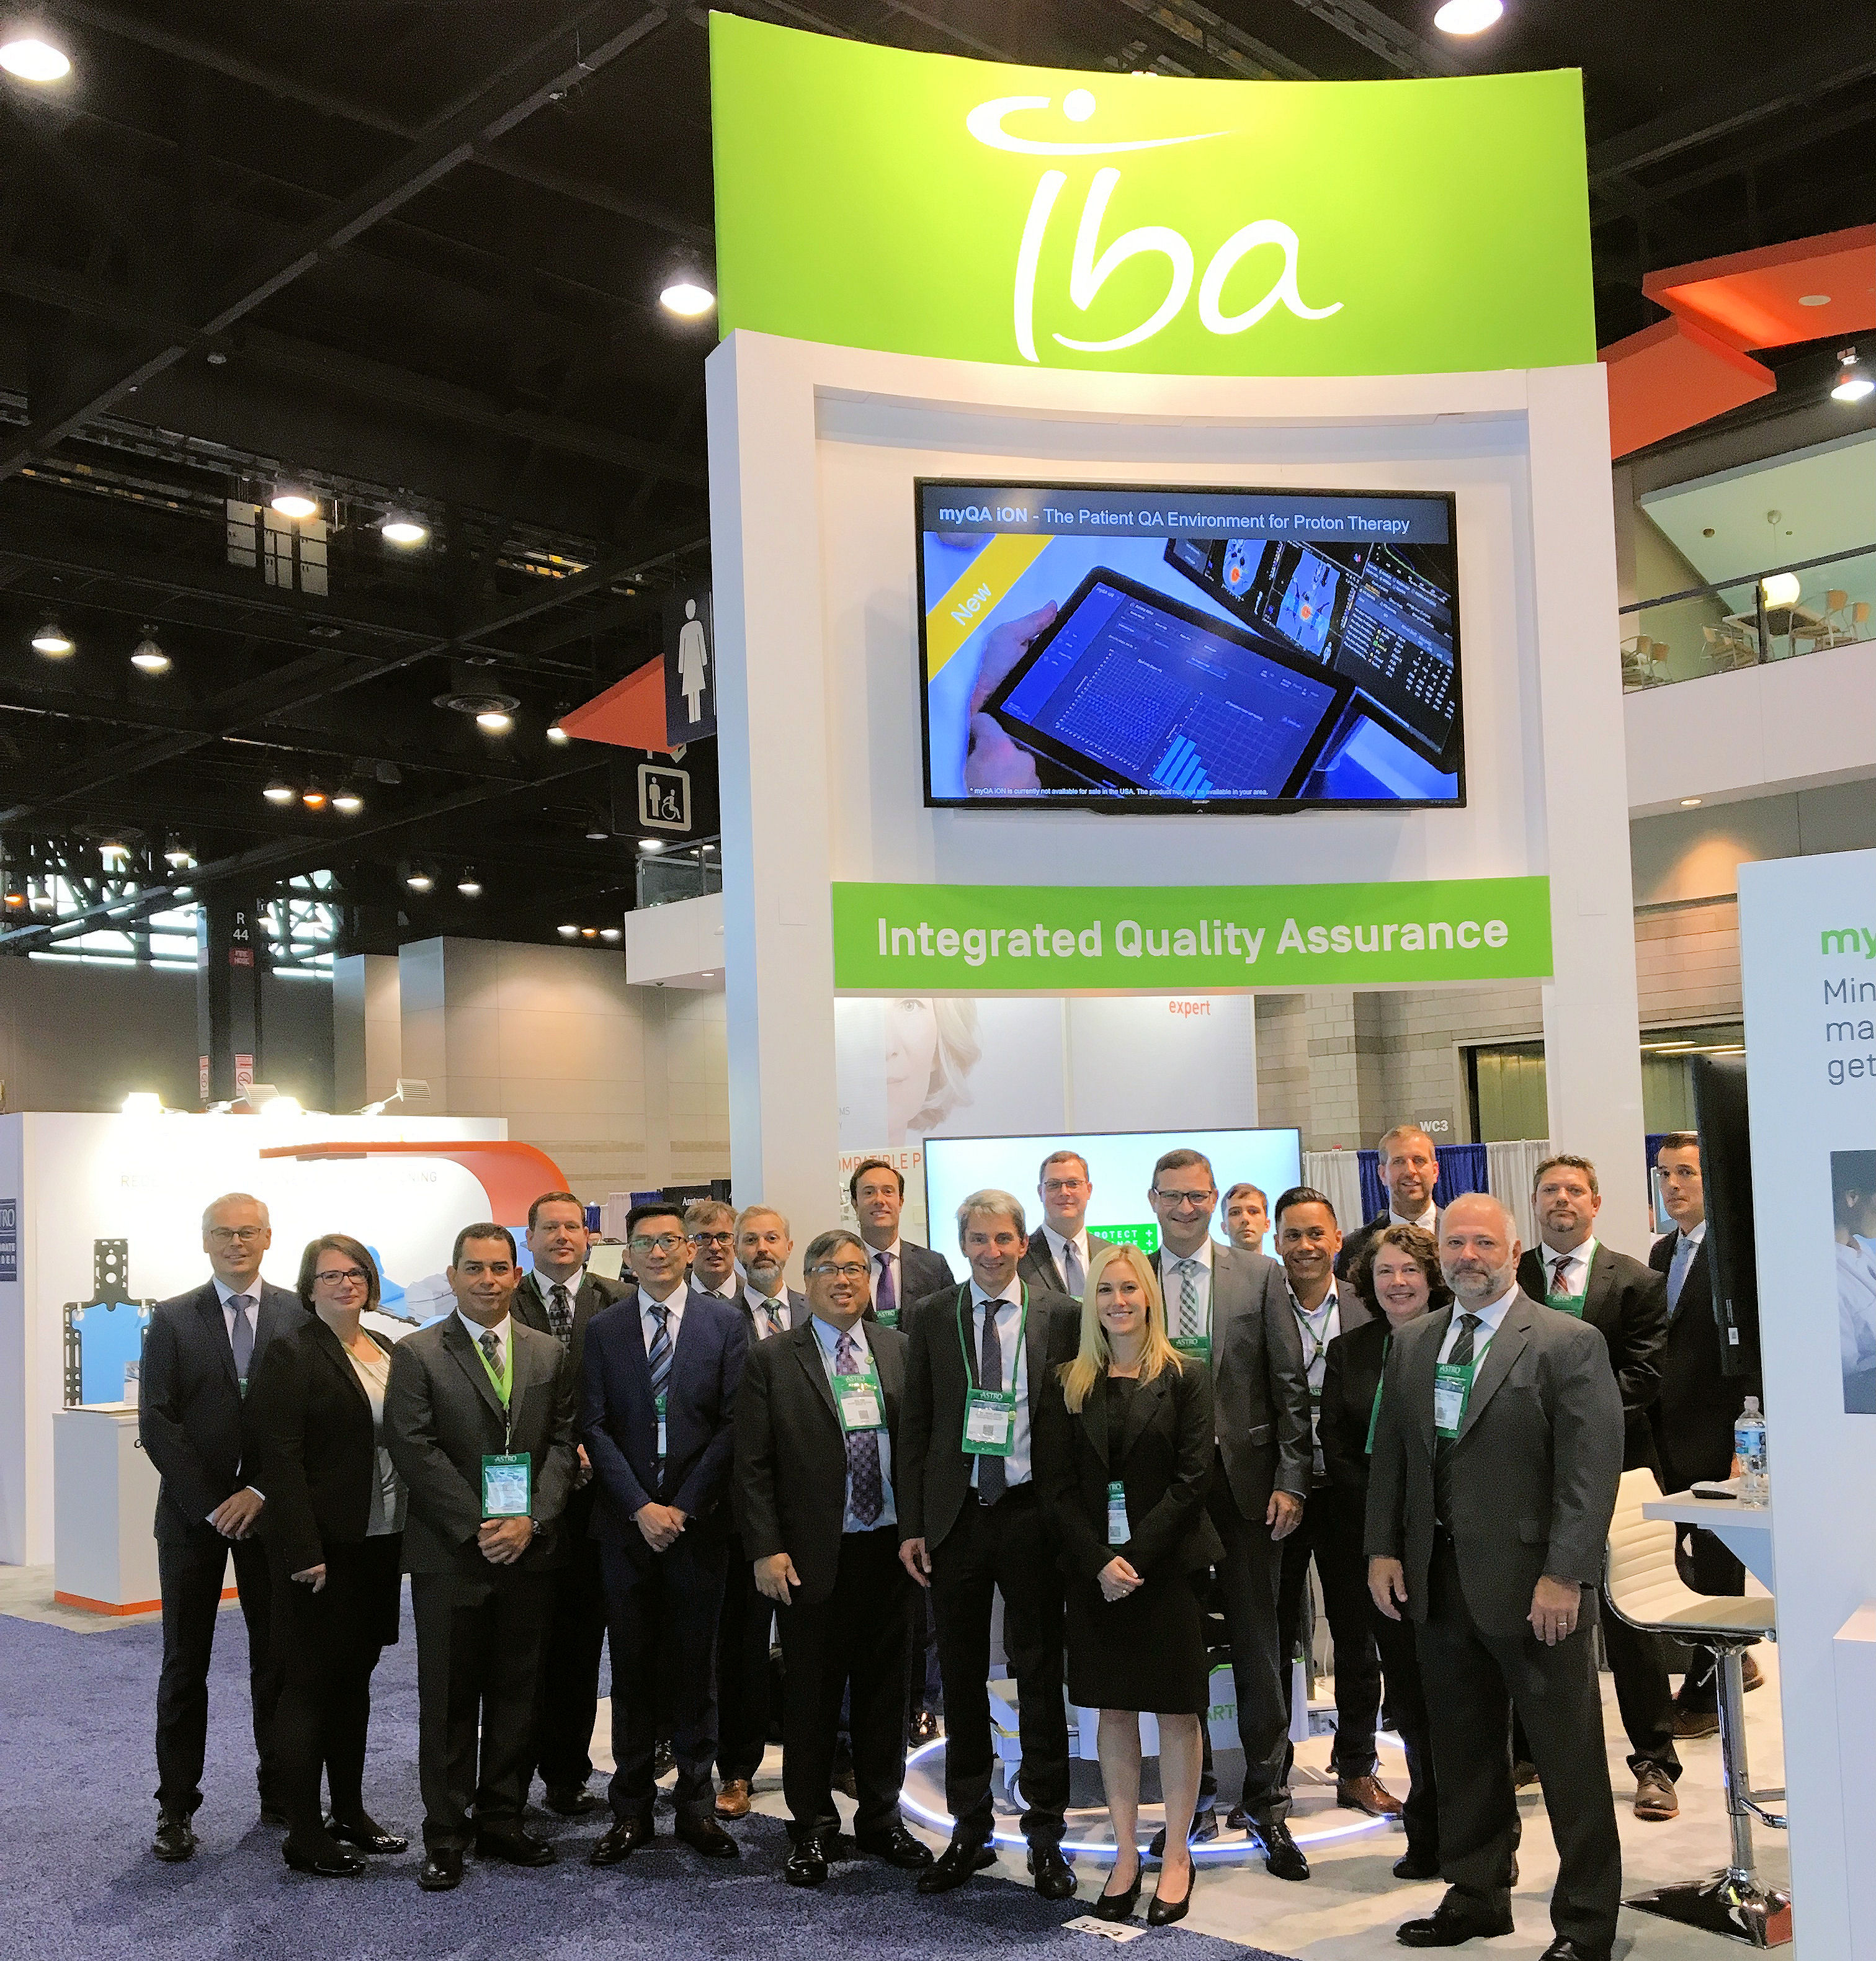 IBA Dosimetry ASTRO 2021 McCormick Place West USA